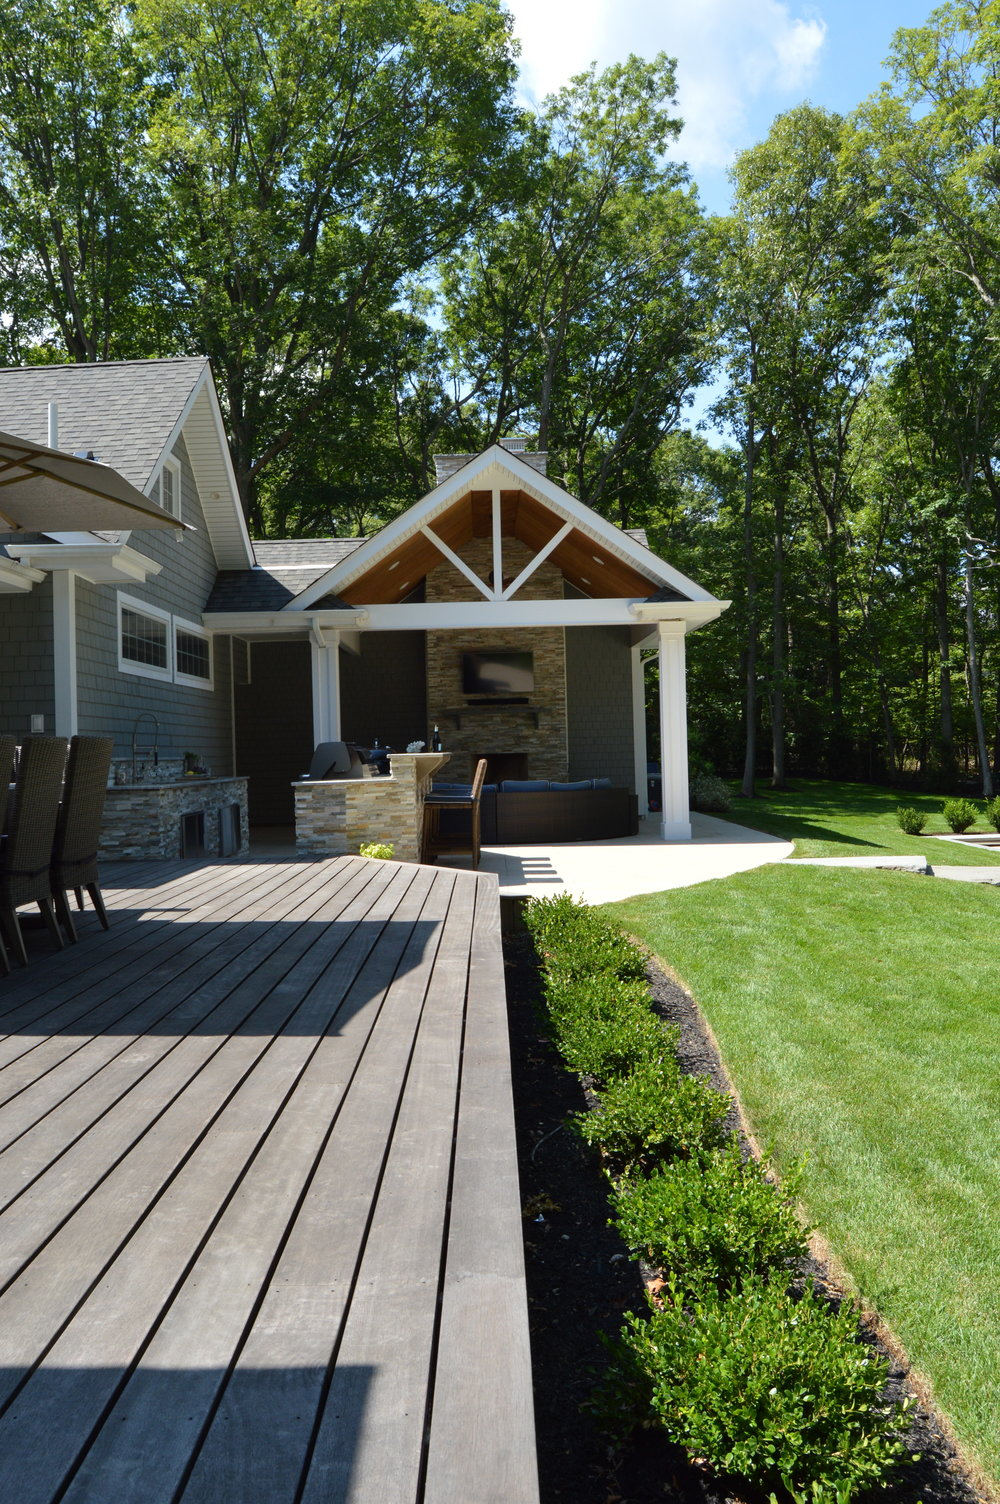 Outdoor kitchen and backyard landscape design in Huntington, NY